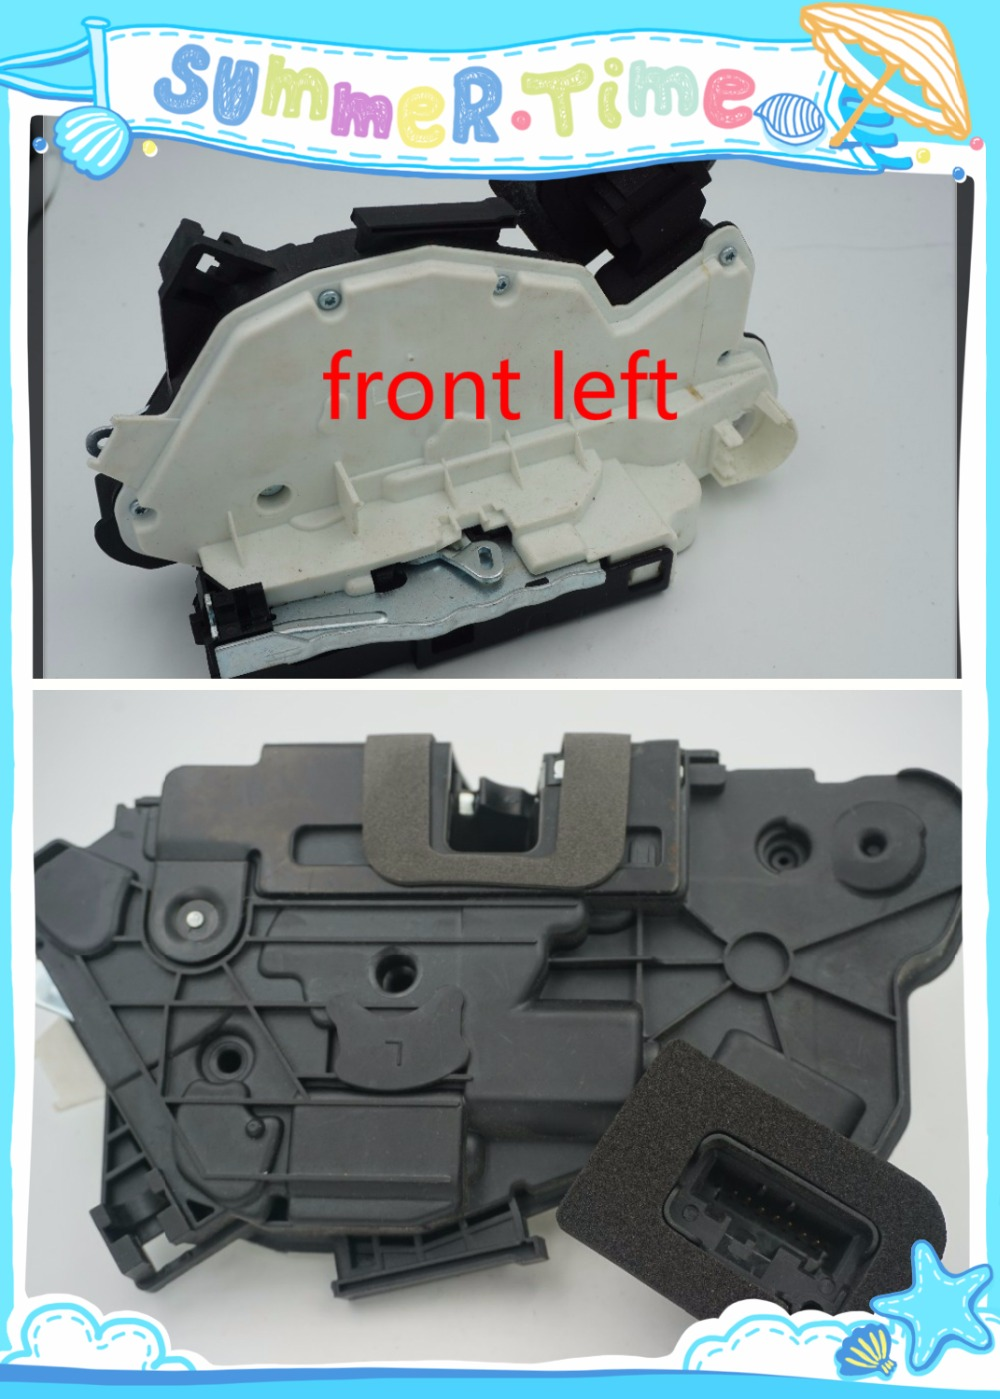 for VW Golf MK6 MK7 Passat B7 Polo Skoda Yeti Door Lock Latch Actuator Driver Side Front Left 5K1 837 015 C/6RD 837 015 A